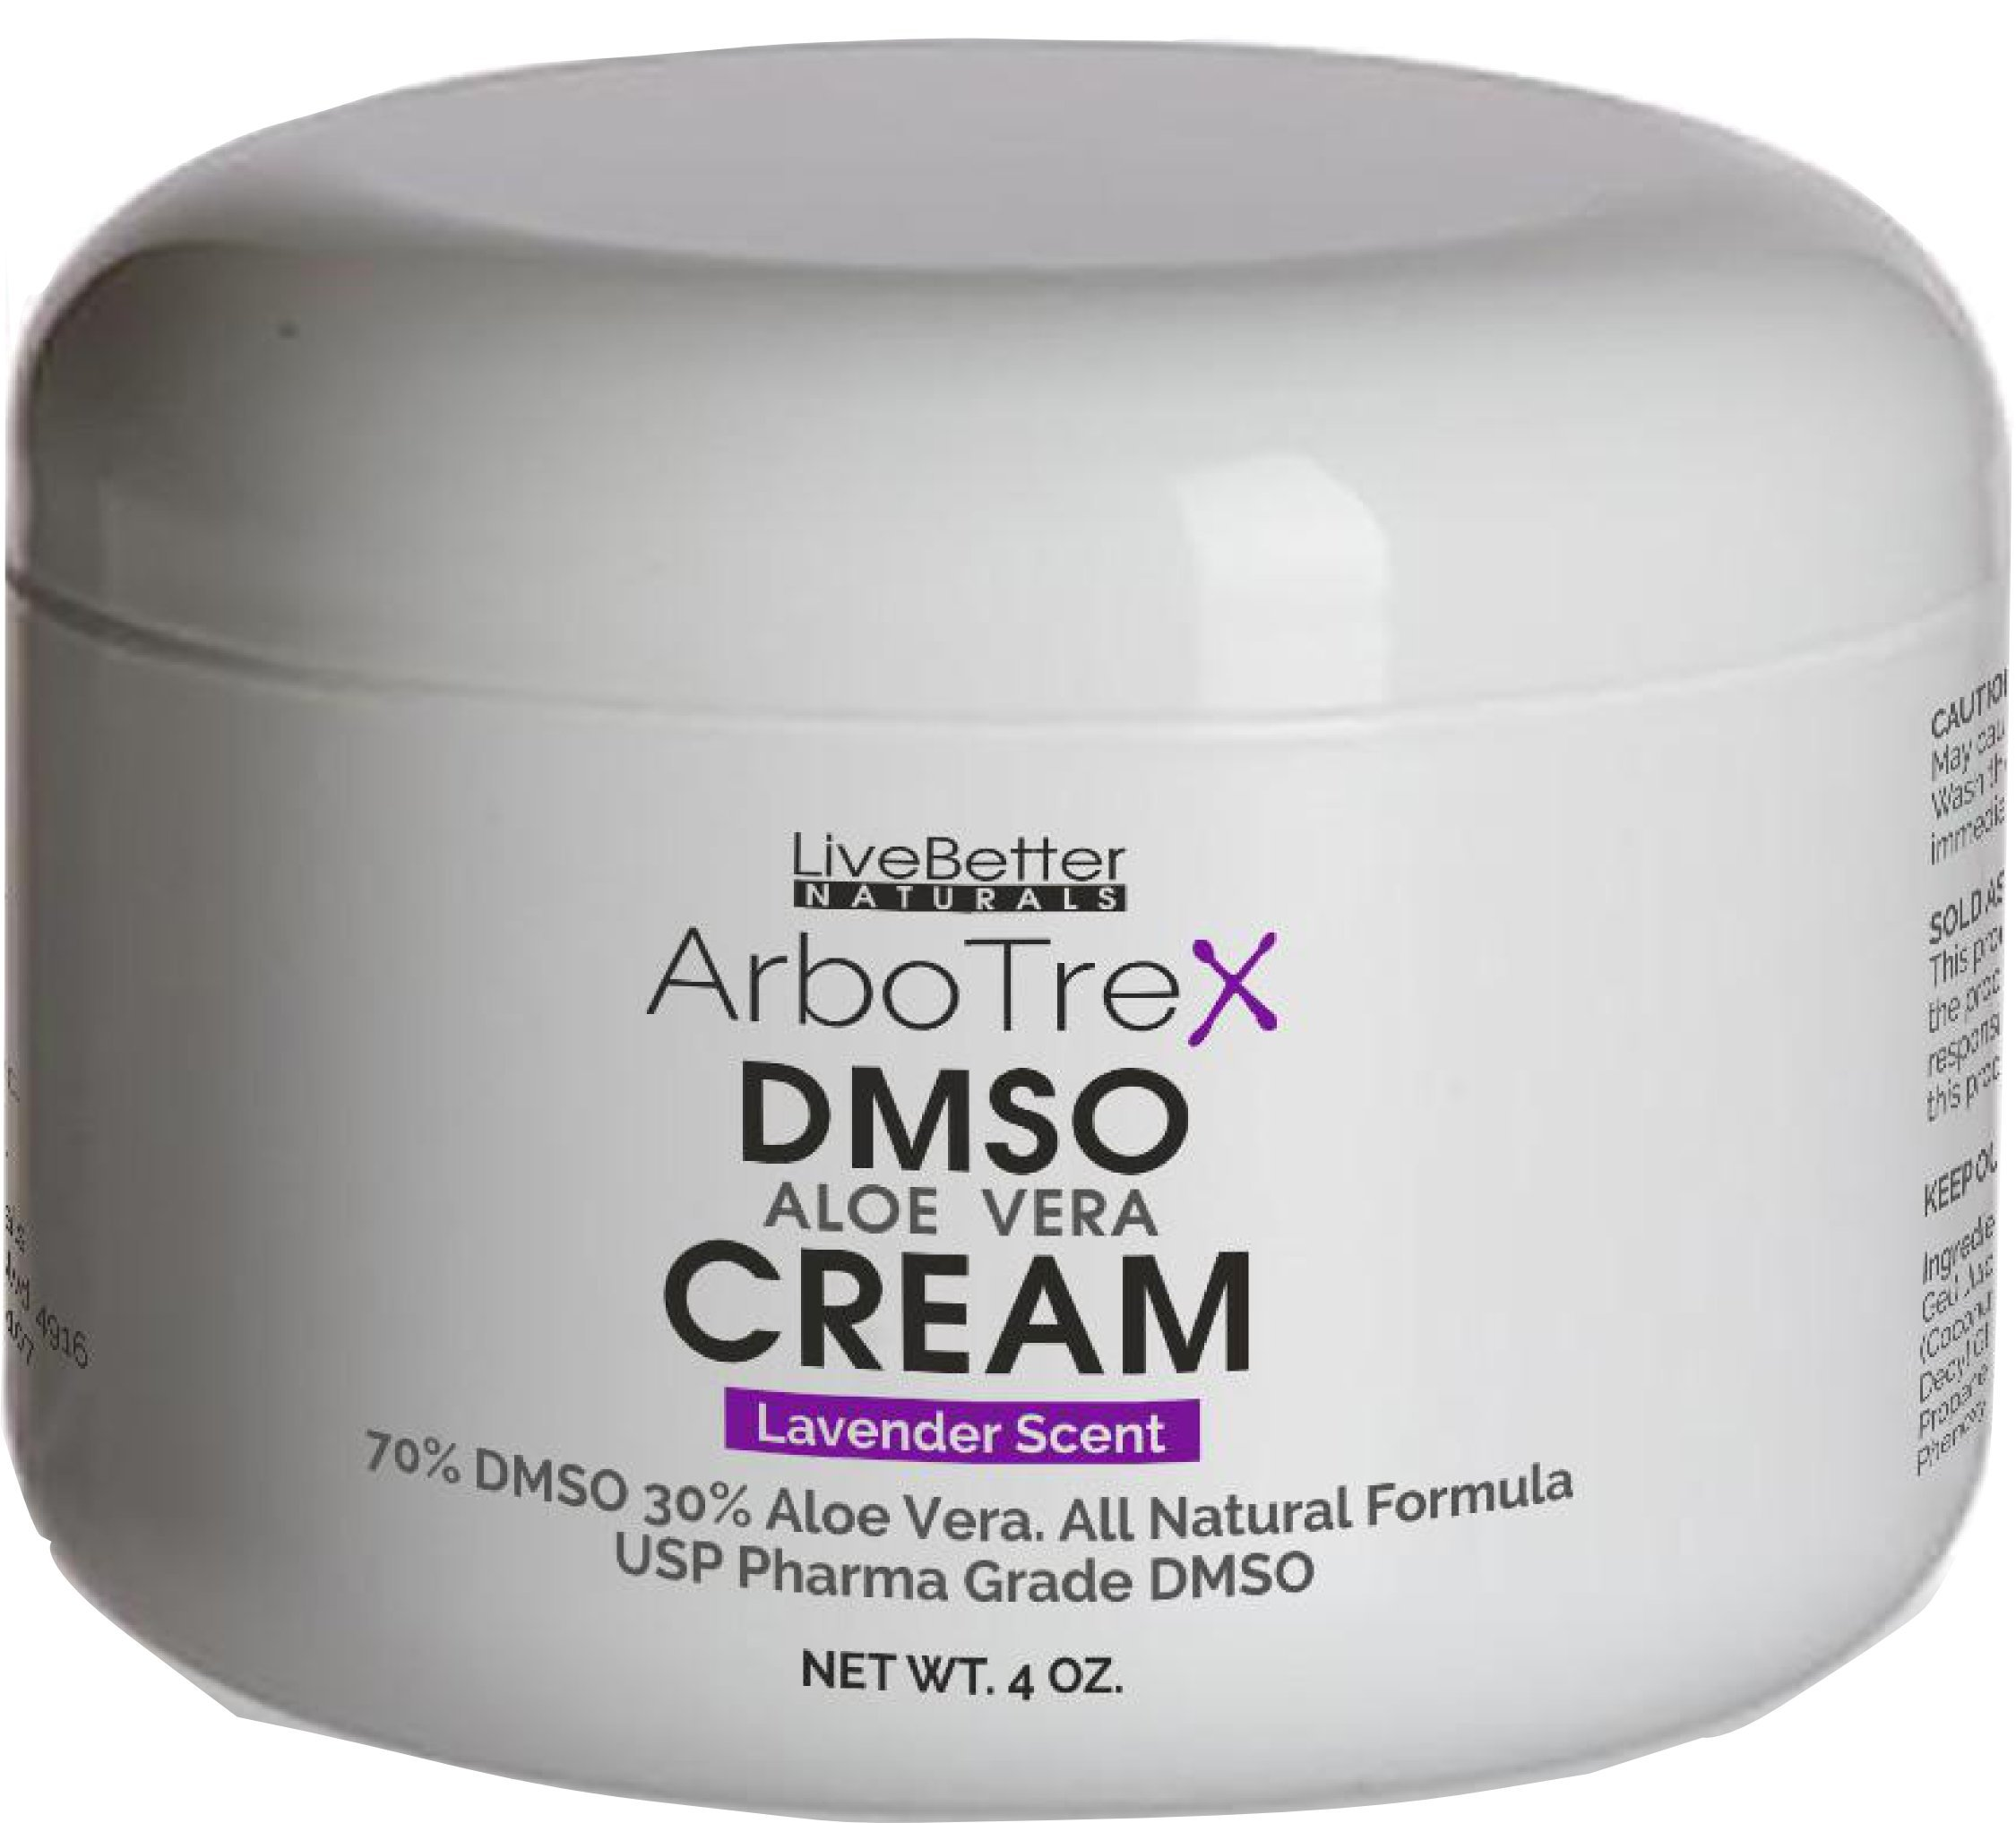 DMSO Cream With Aloe Vera - Lavender Scented, Made With 99.9% Pure Pharmaceutical grade DMSO - 70% DMSO/30% Aloe Vera, Made in USA for Live Better Naturals 4 oz by Live better Naturals